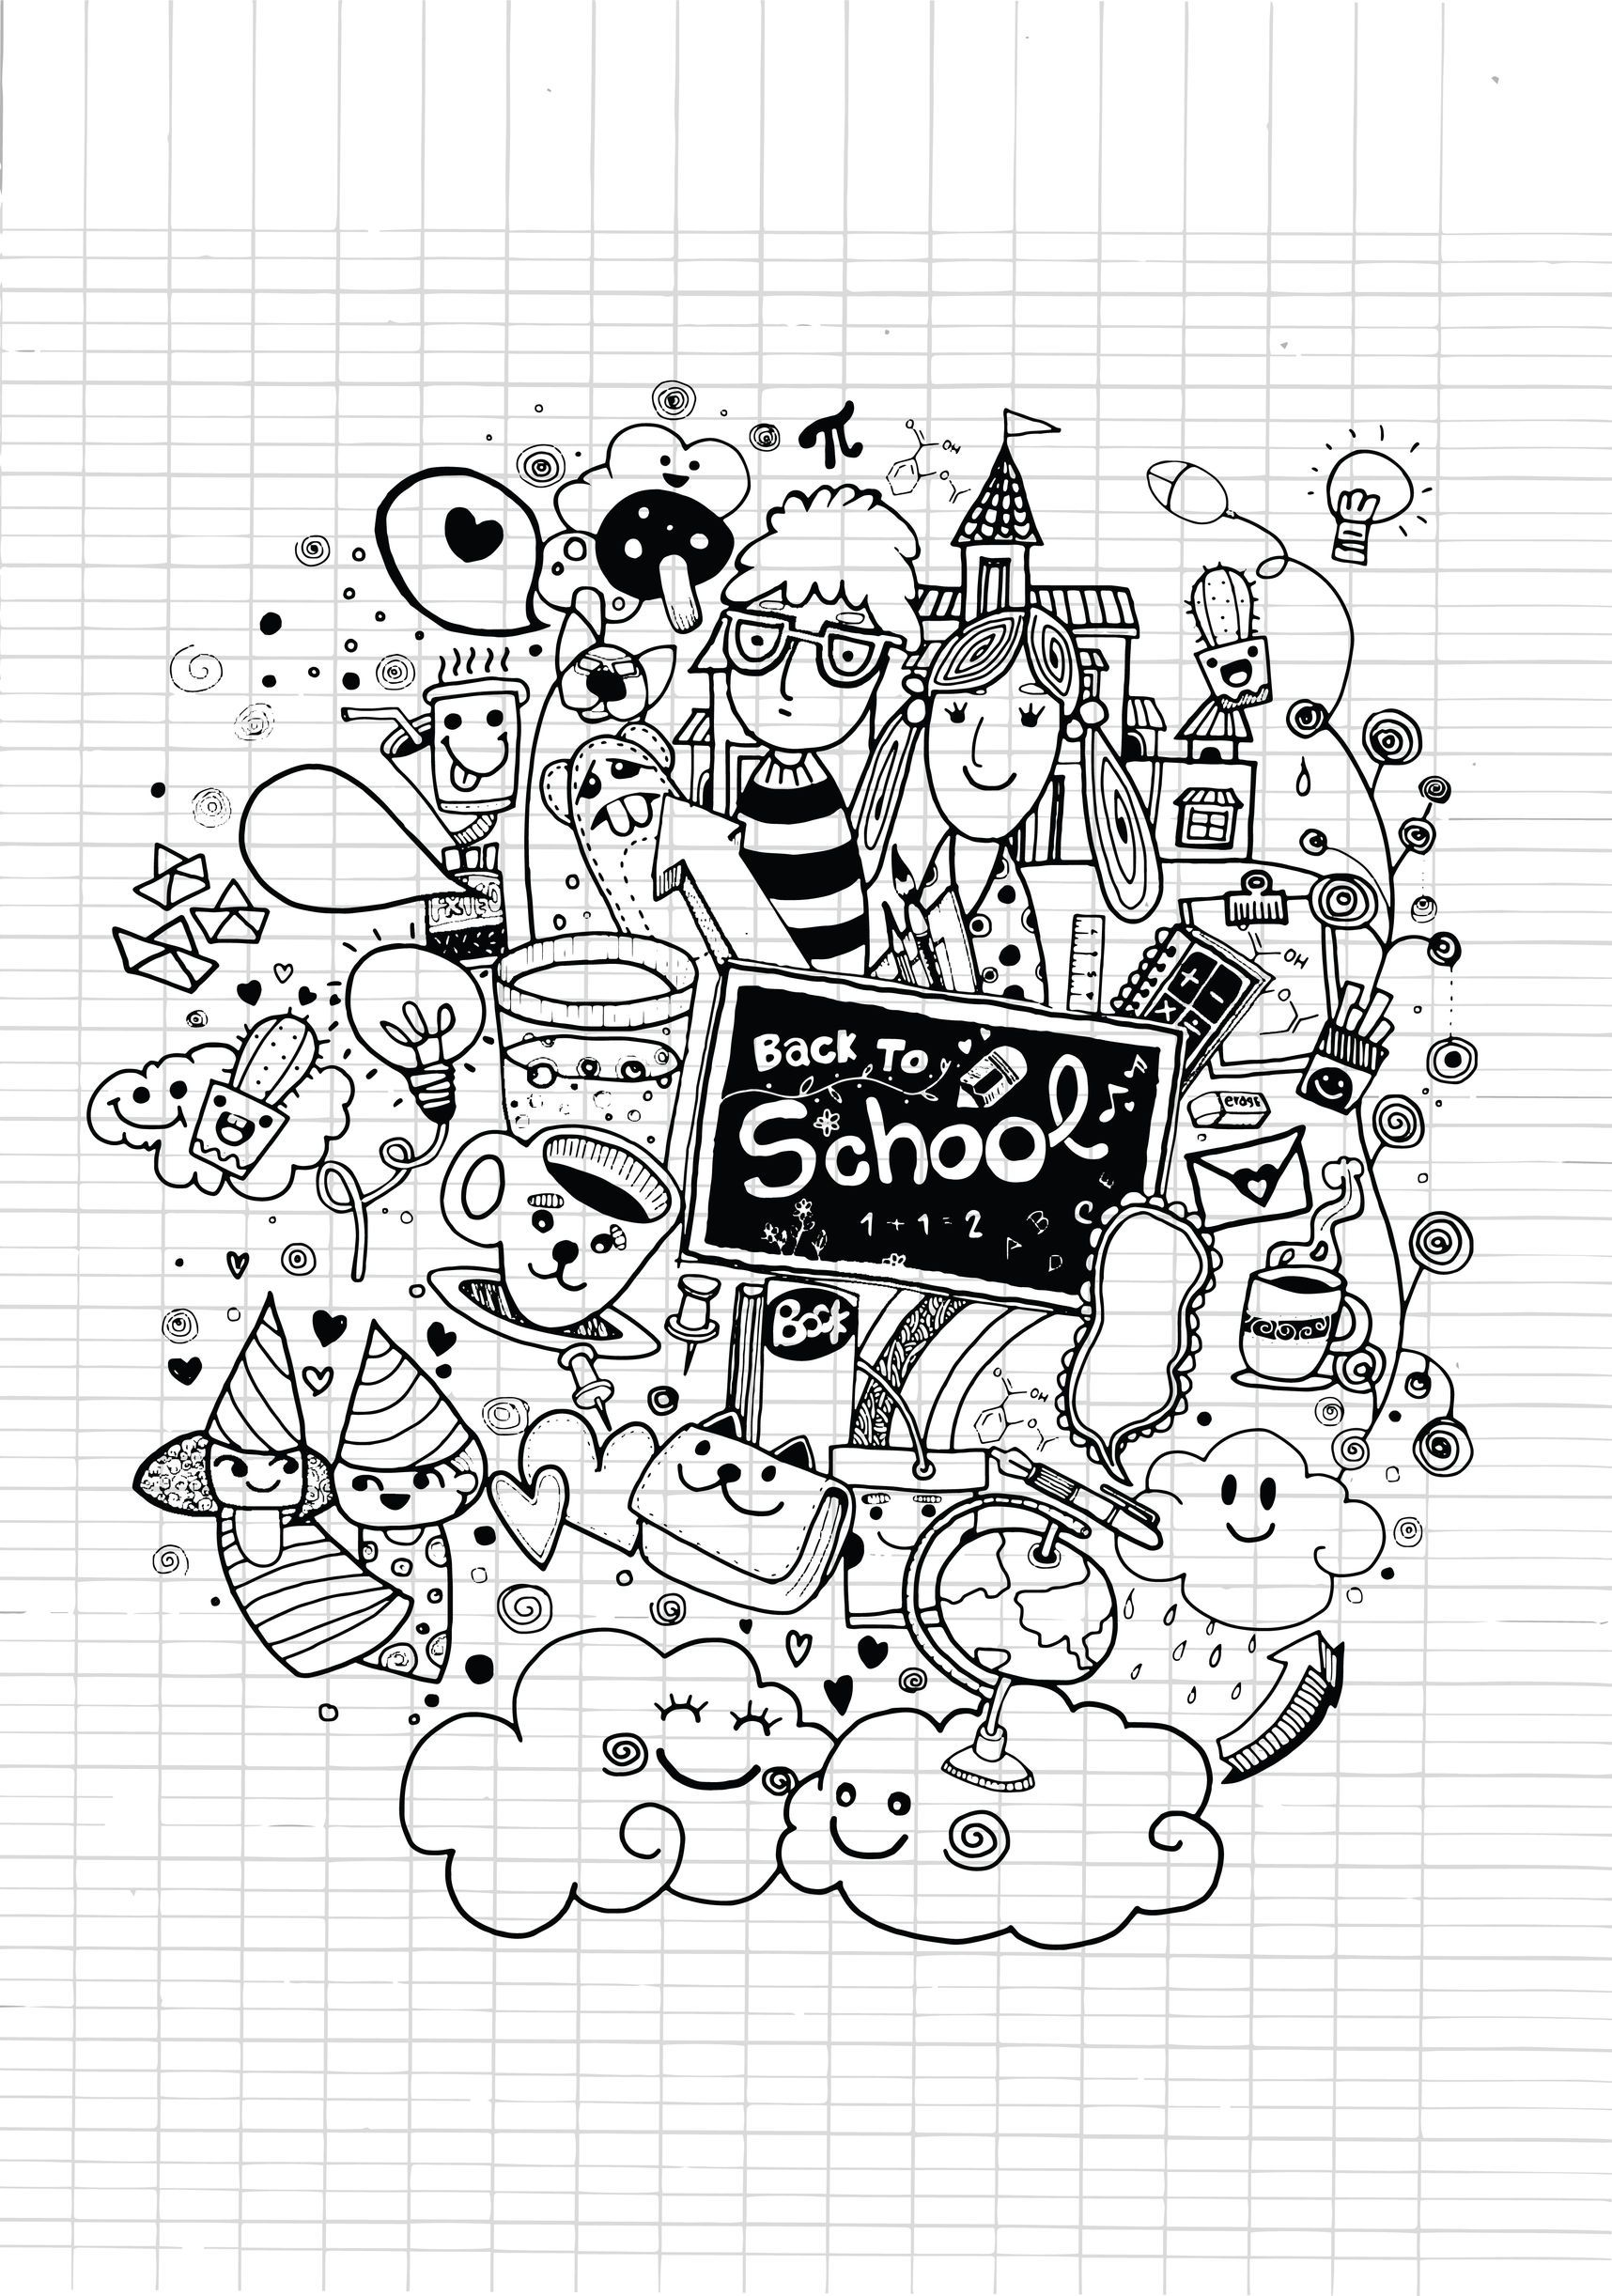 free coloring page coloring doodle back to by 9george